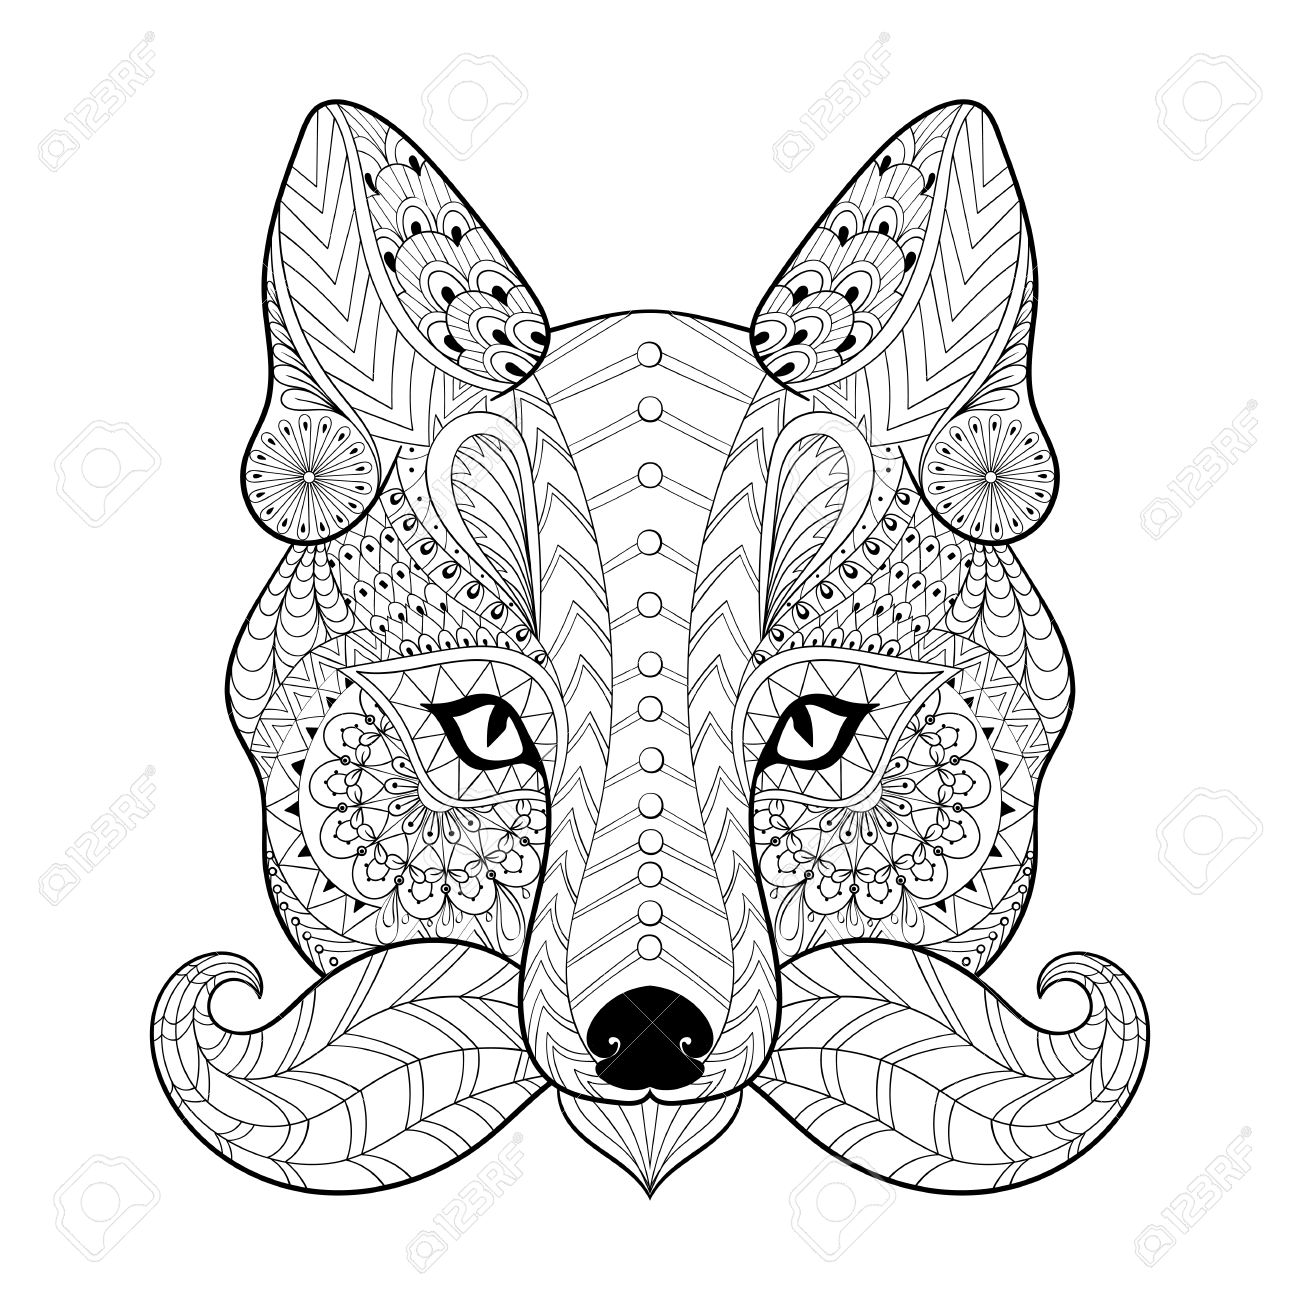 Tribal Coloring Pages Hand Drawn Tribal Fox Face For Adult Anti Stress Coloring Pages